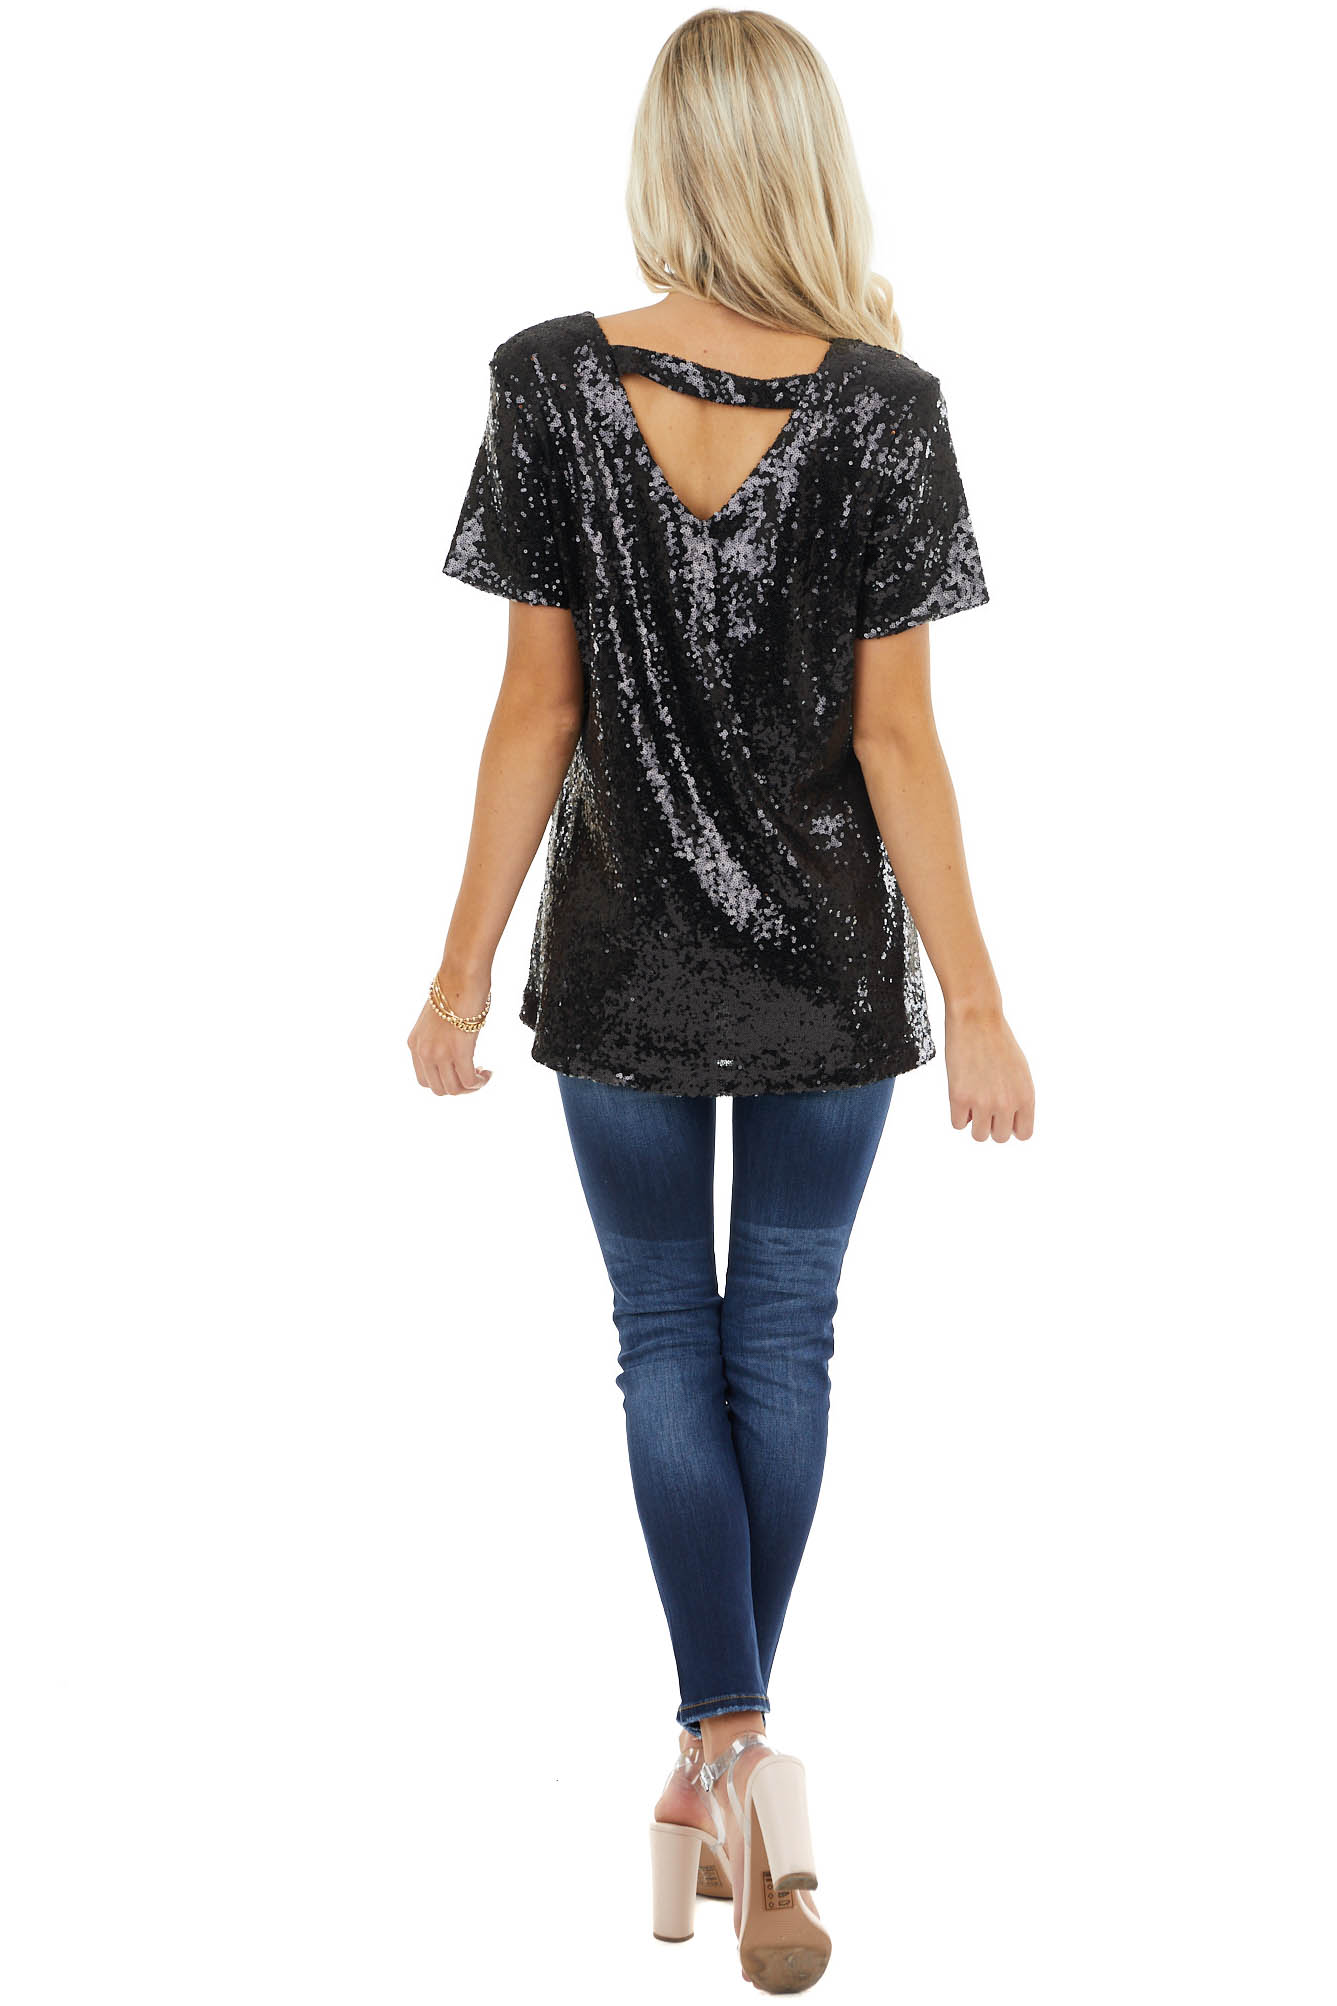 Black Sequined Short Sleeve Top with Back Triangle Cutout